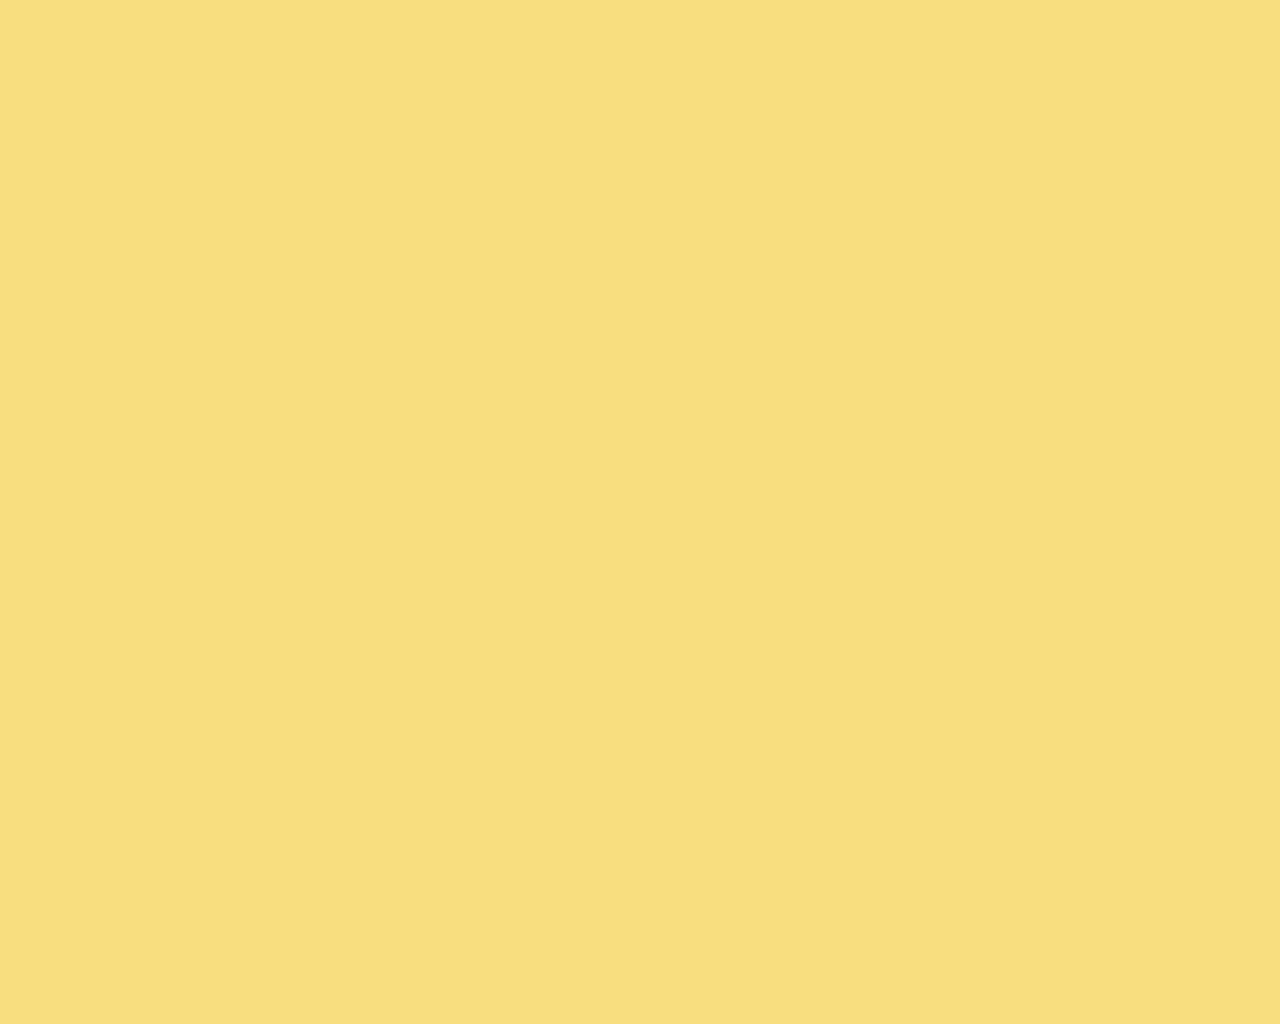 1280x1024 Mellow Yellow Solid Color Background